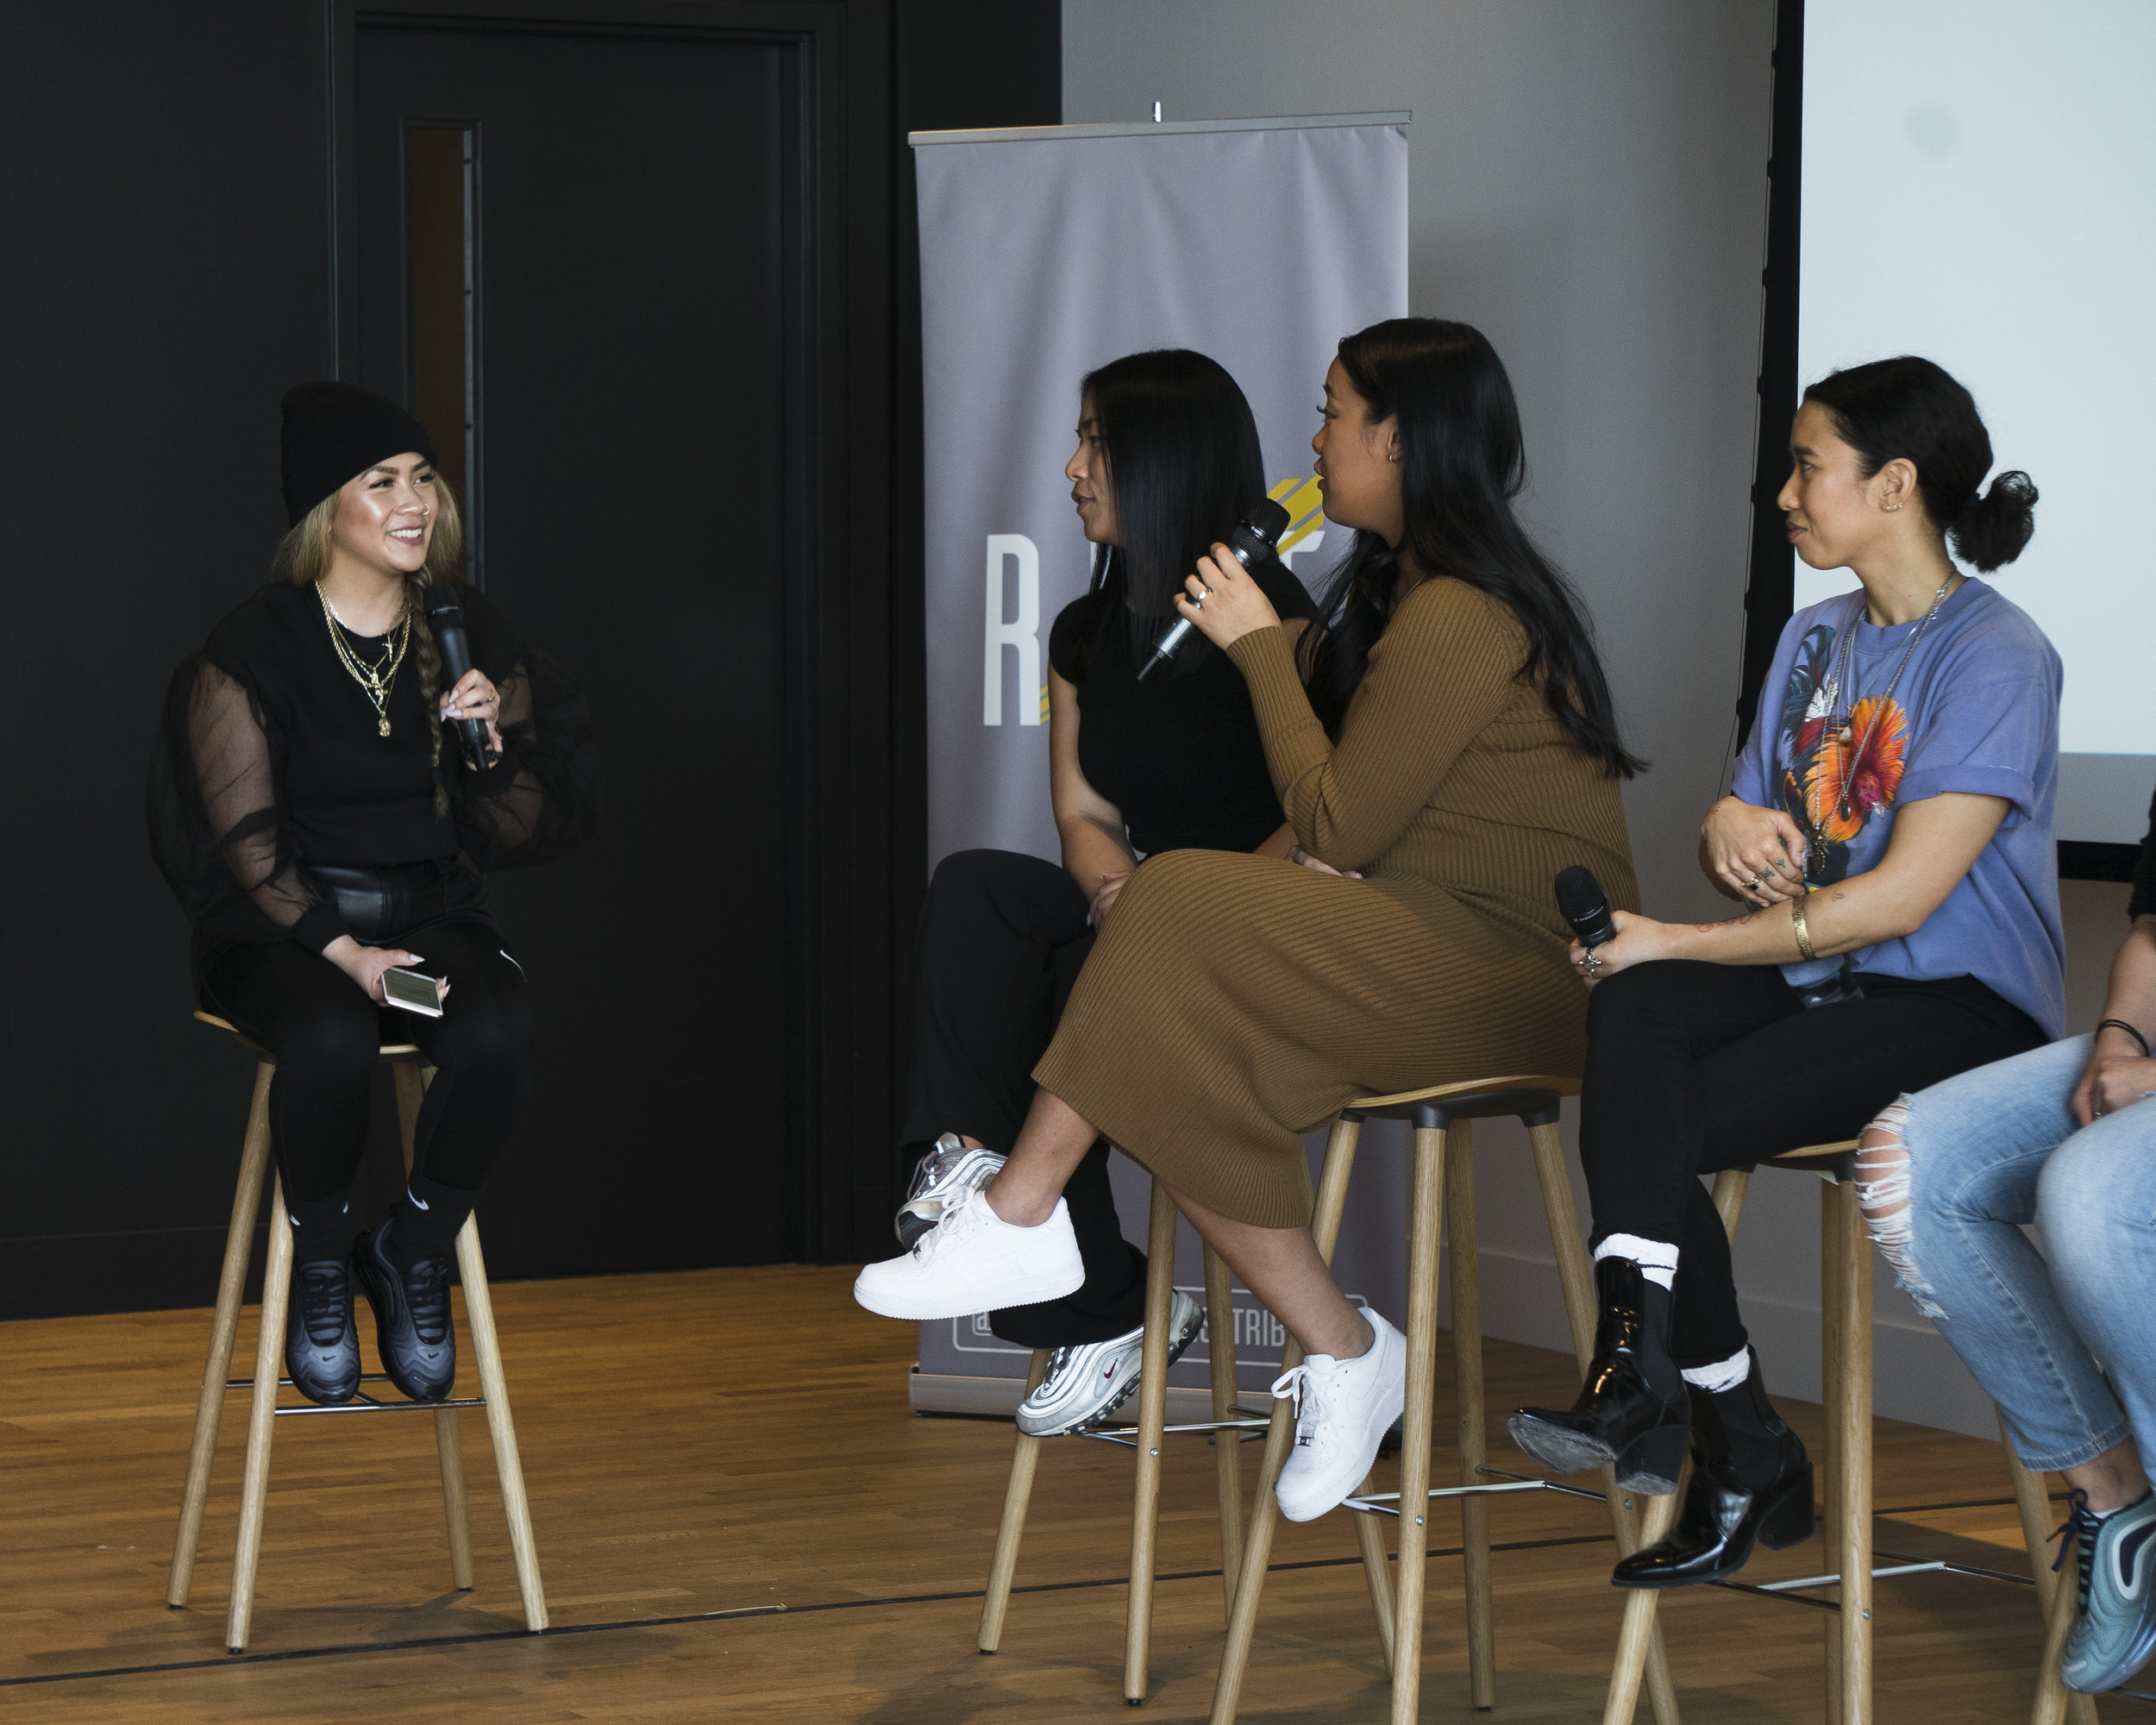 RISE TRIBE - FOUNDED BY FILIPINX | International Women's Day 2019 | TORONTO, ON